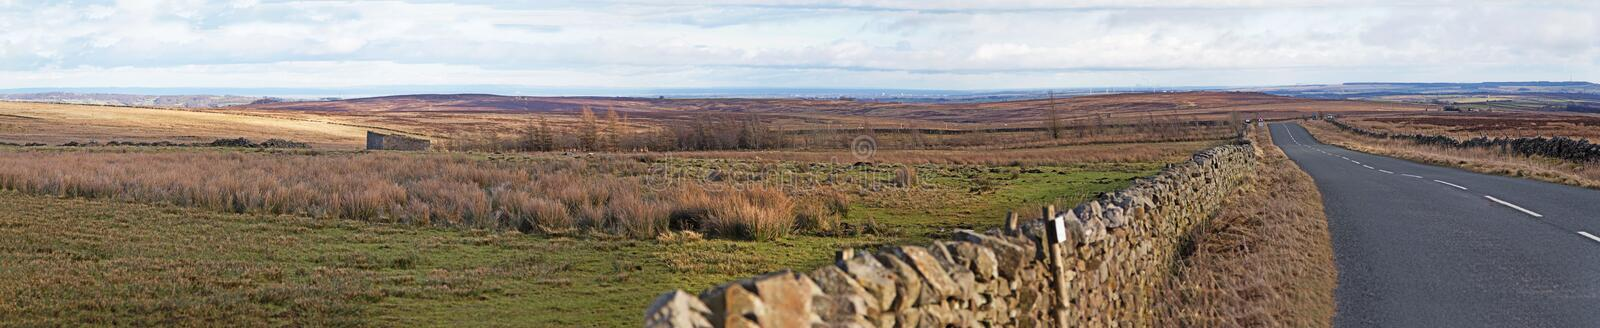 From Menwith Hill stock images